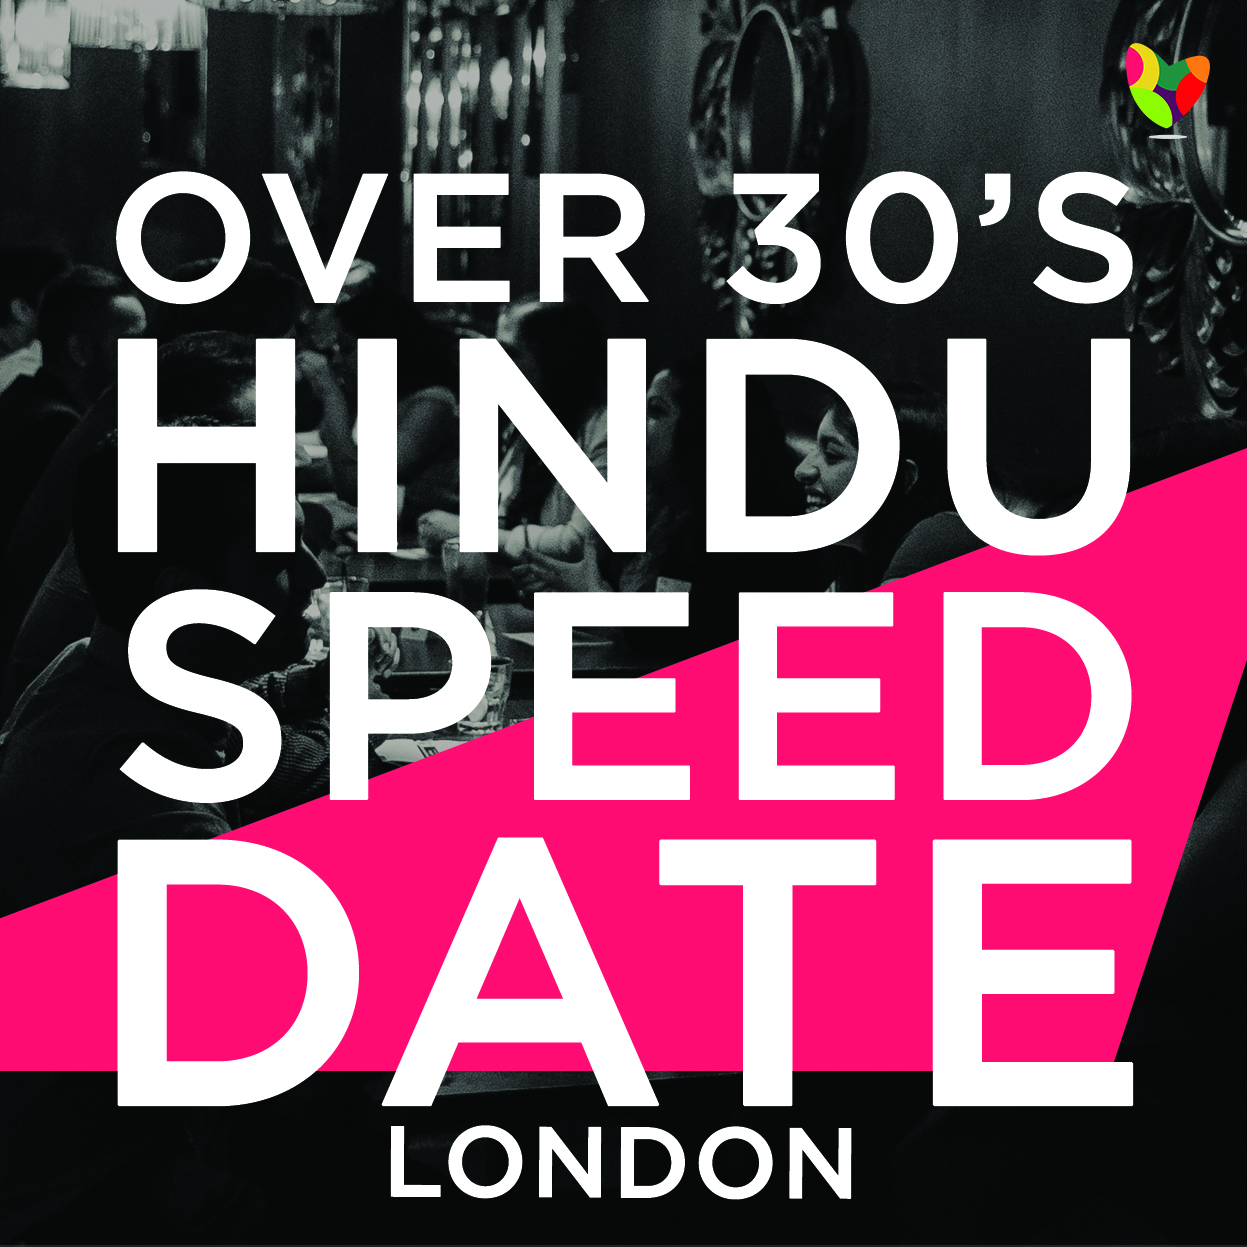 slick hindu dating site Hindu punjabi singles events pictures only say so much asiand8 events is the largest and longest running events company in the uk with over 200 south asian & indian events across the country, come and meet some of our members face to face view all our events 10,000s of members the largest asian dating site in the uk.